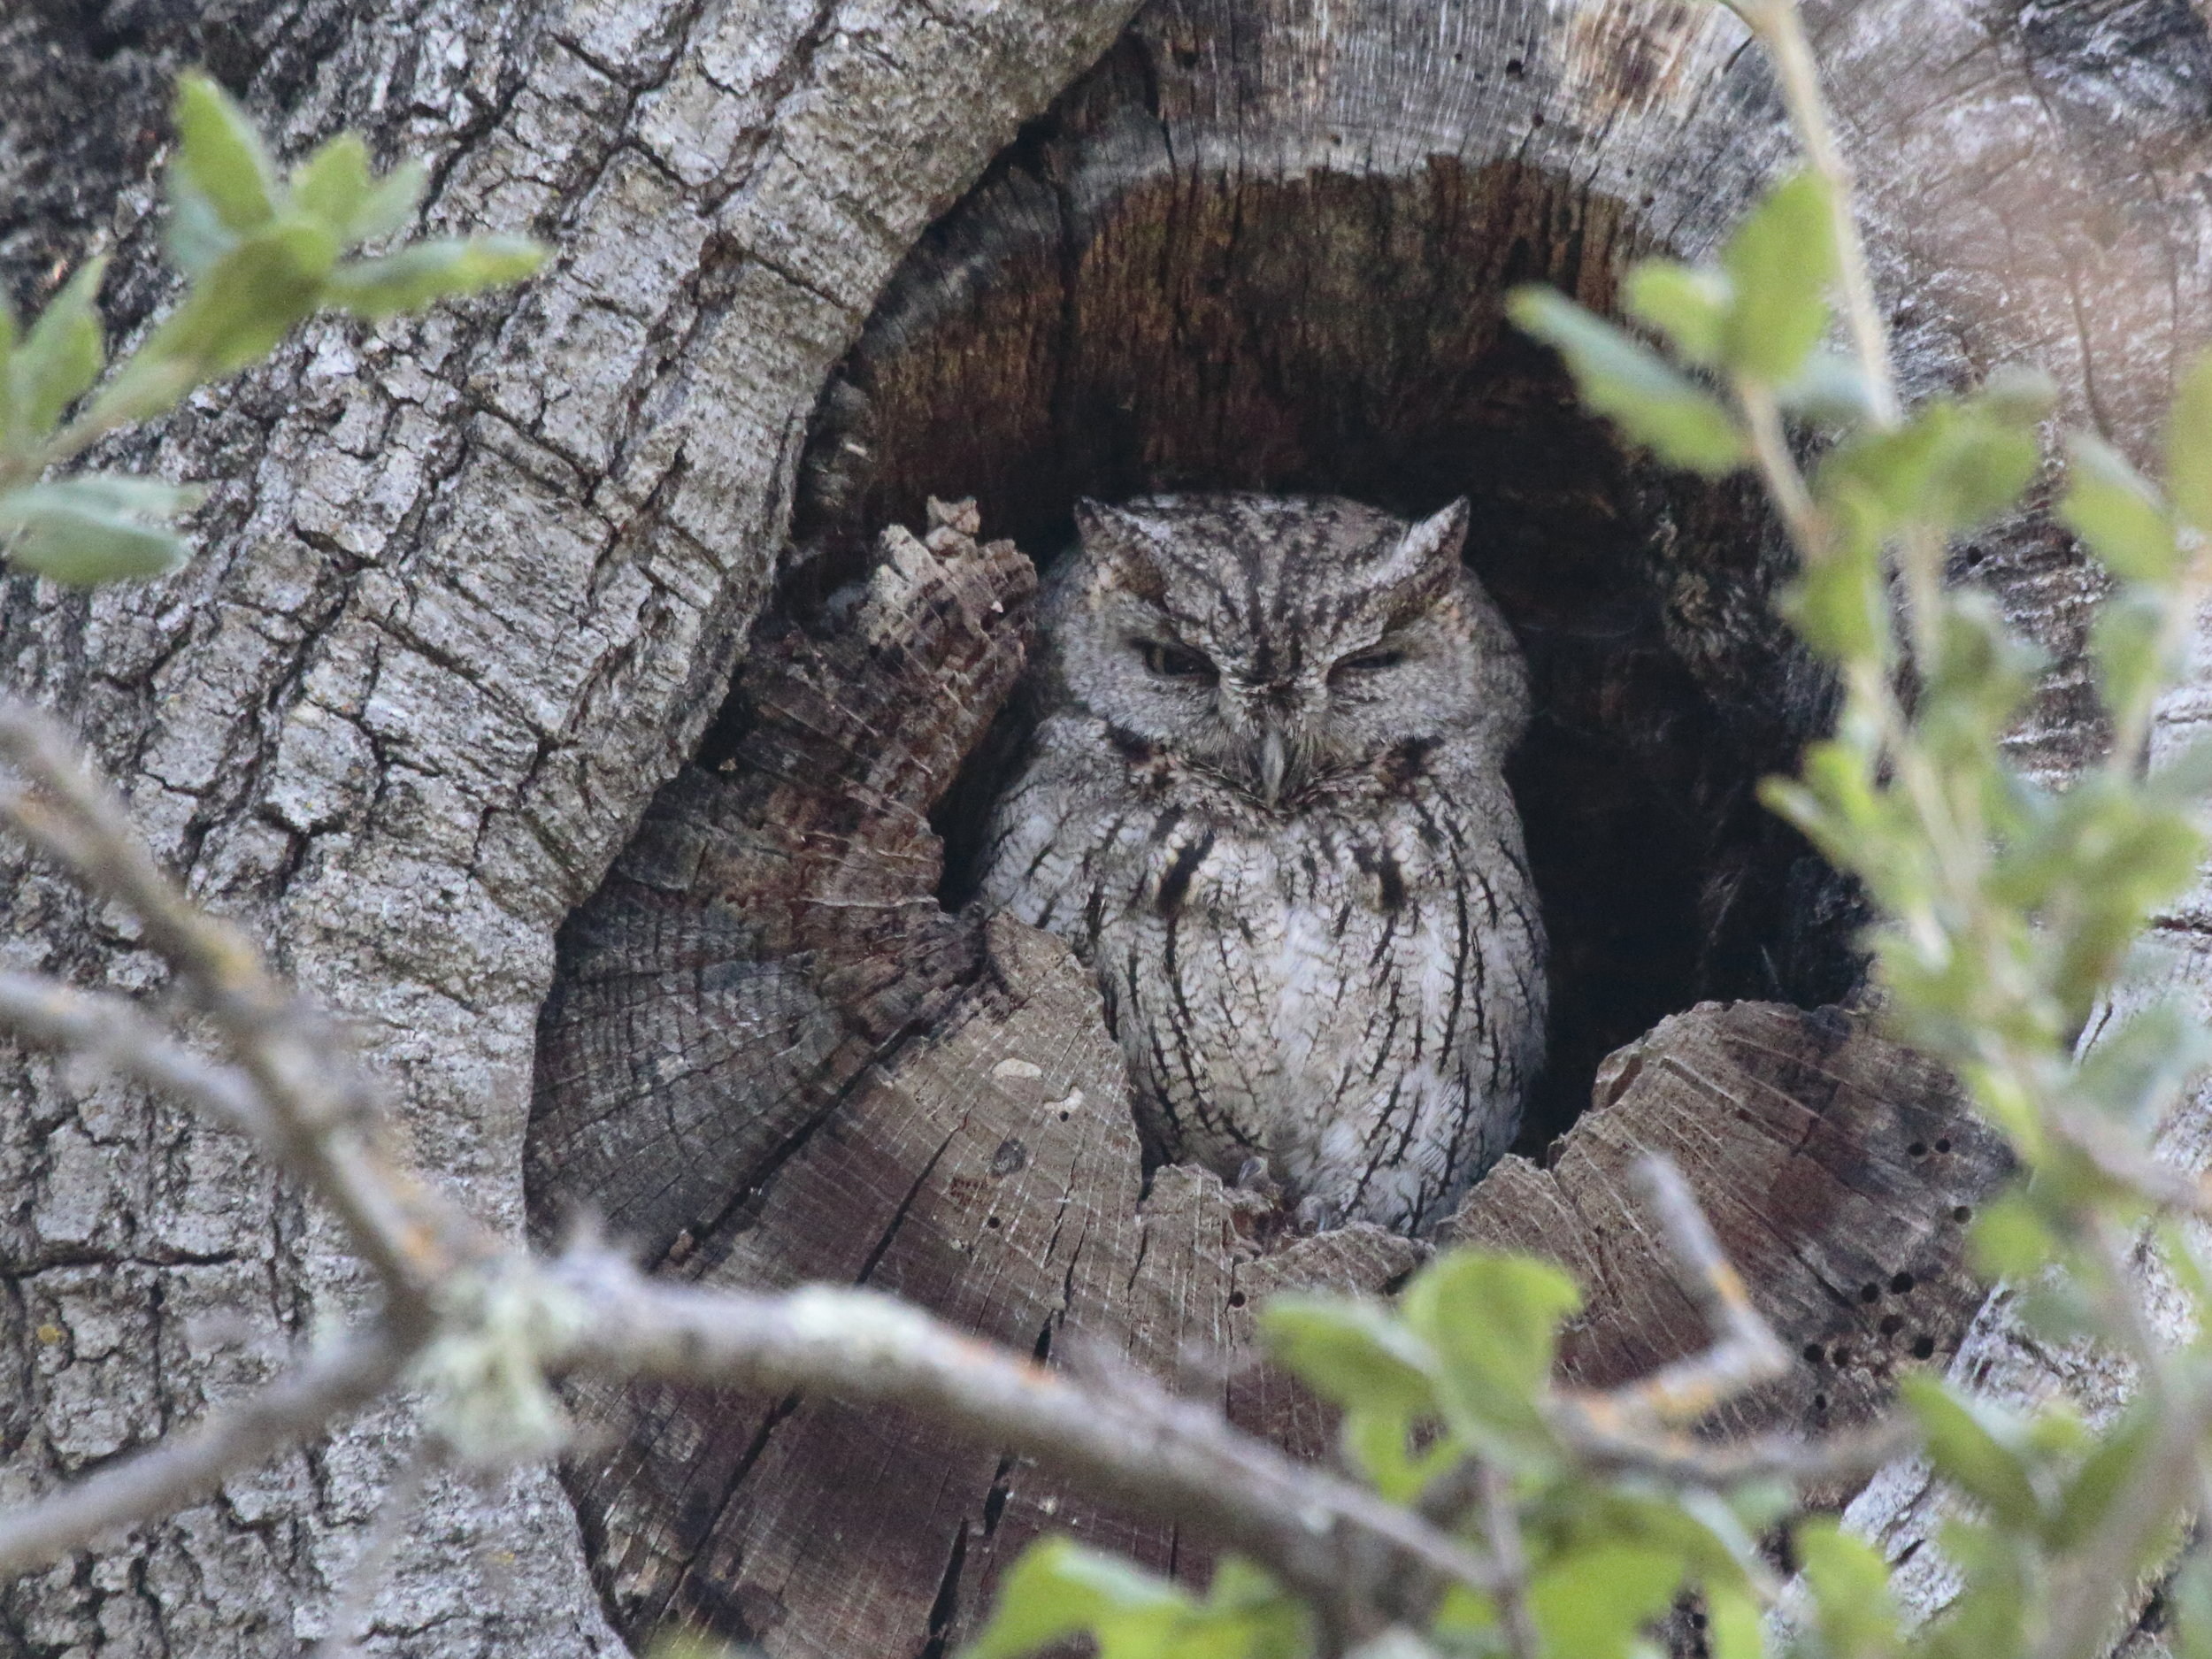 Leigh Creekside Park is habitat for Western Screech Owls, which often nest in tree cavities. (Photo: Beth Branthaver)